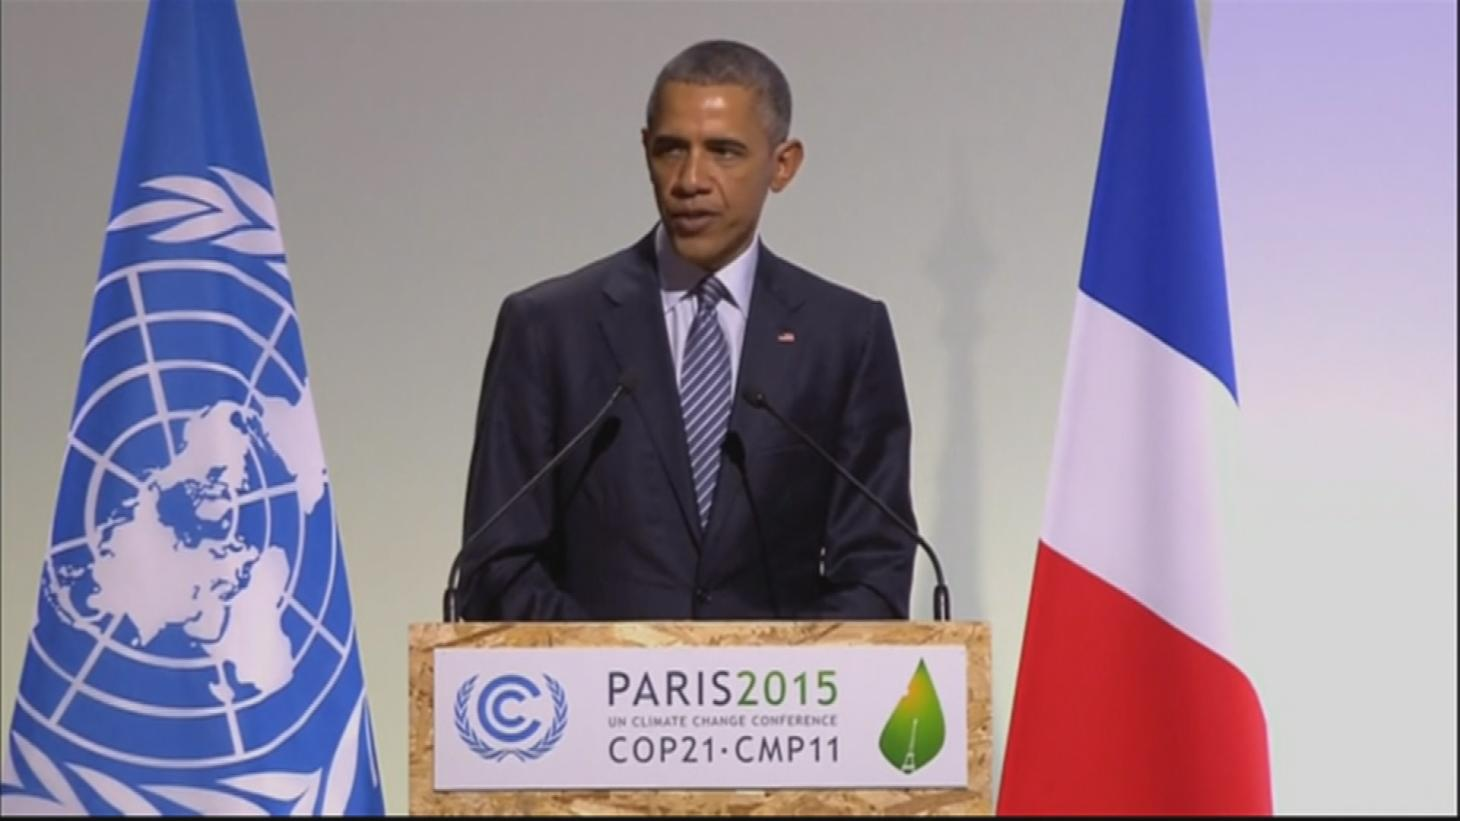 With climate at 'breaking point', leaders urge breakthrough in Paris